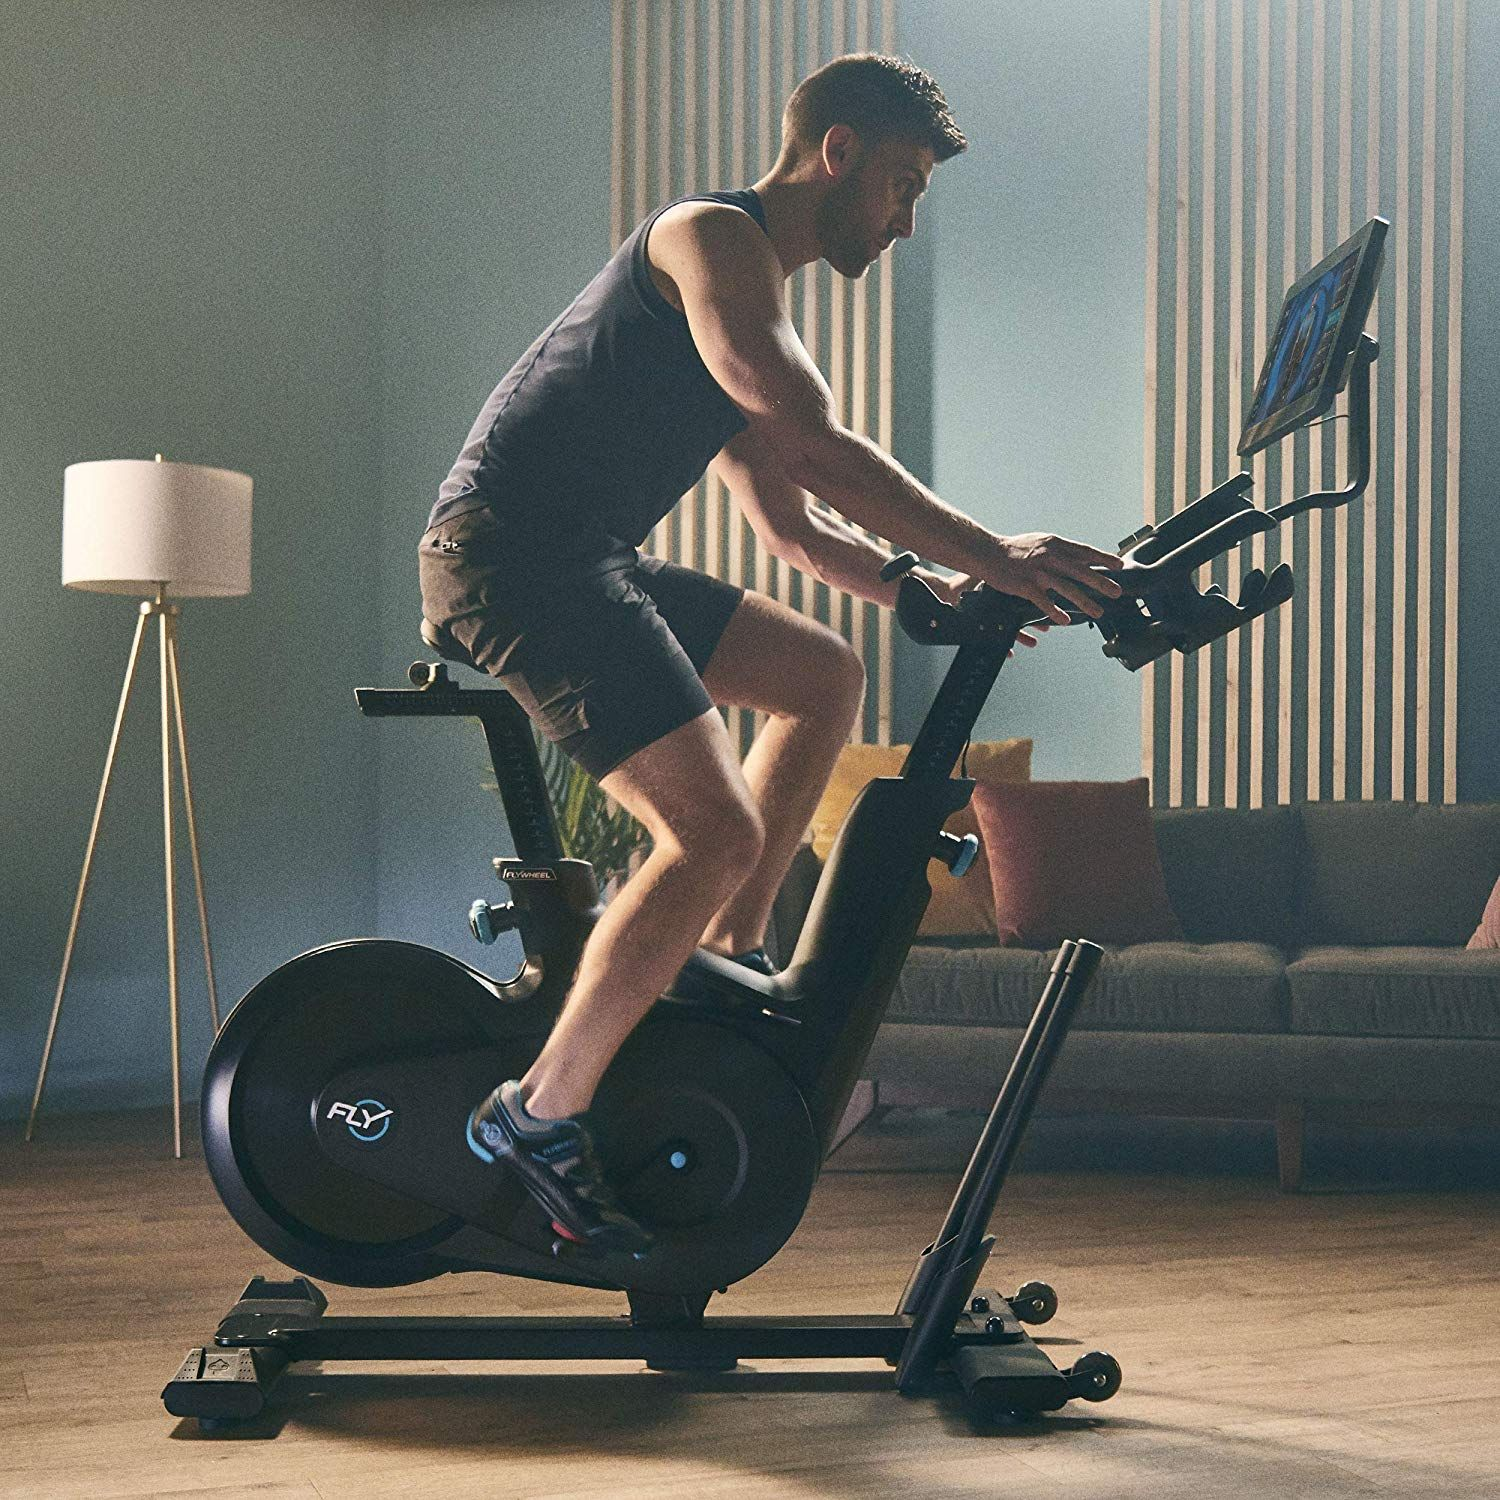 Amazon Slashed the Price of This FlyWheel Exercise Bike Today